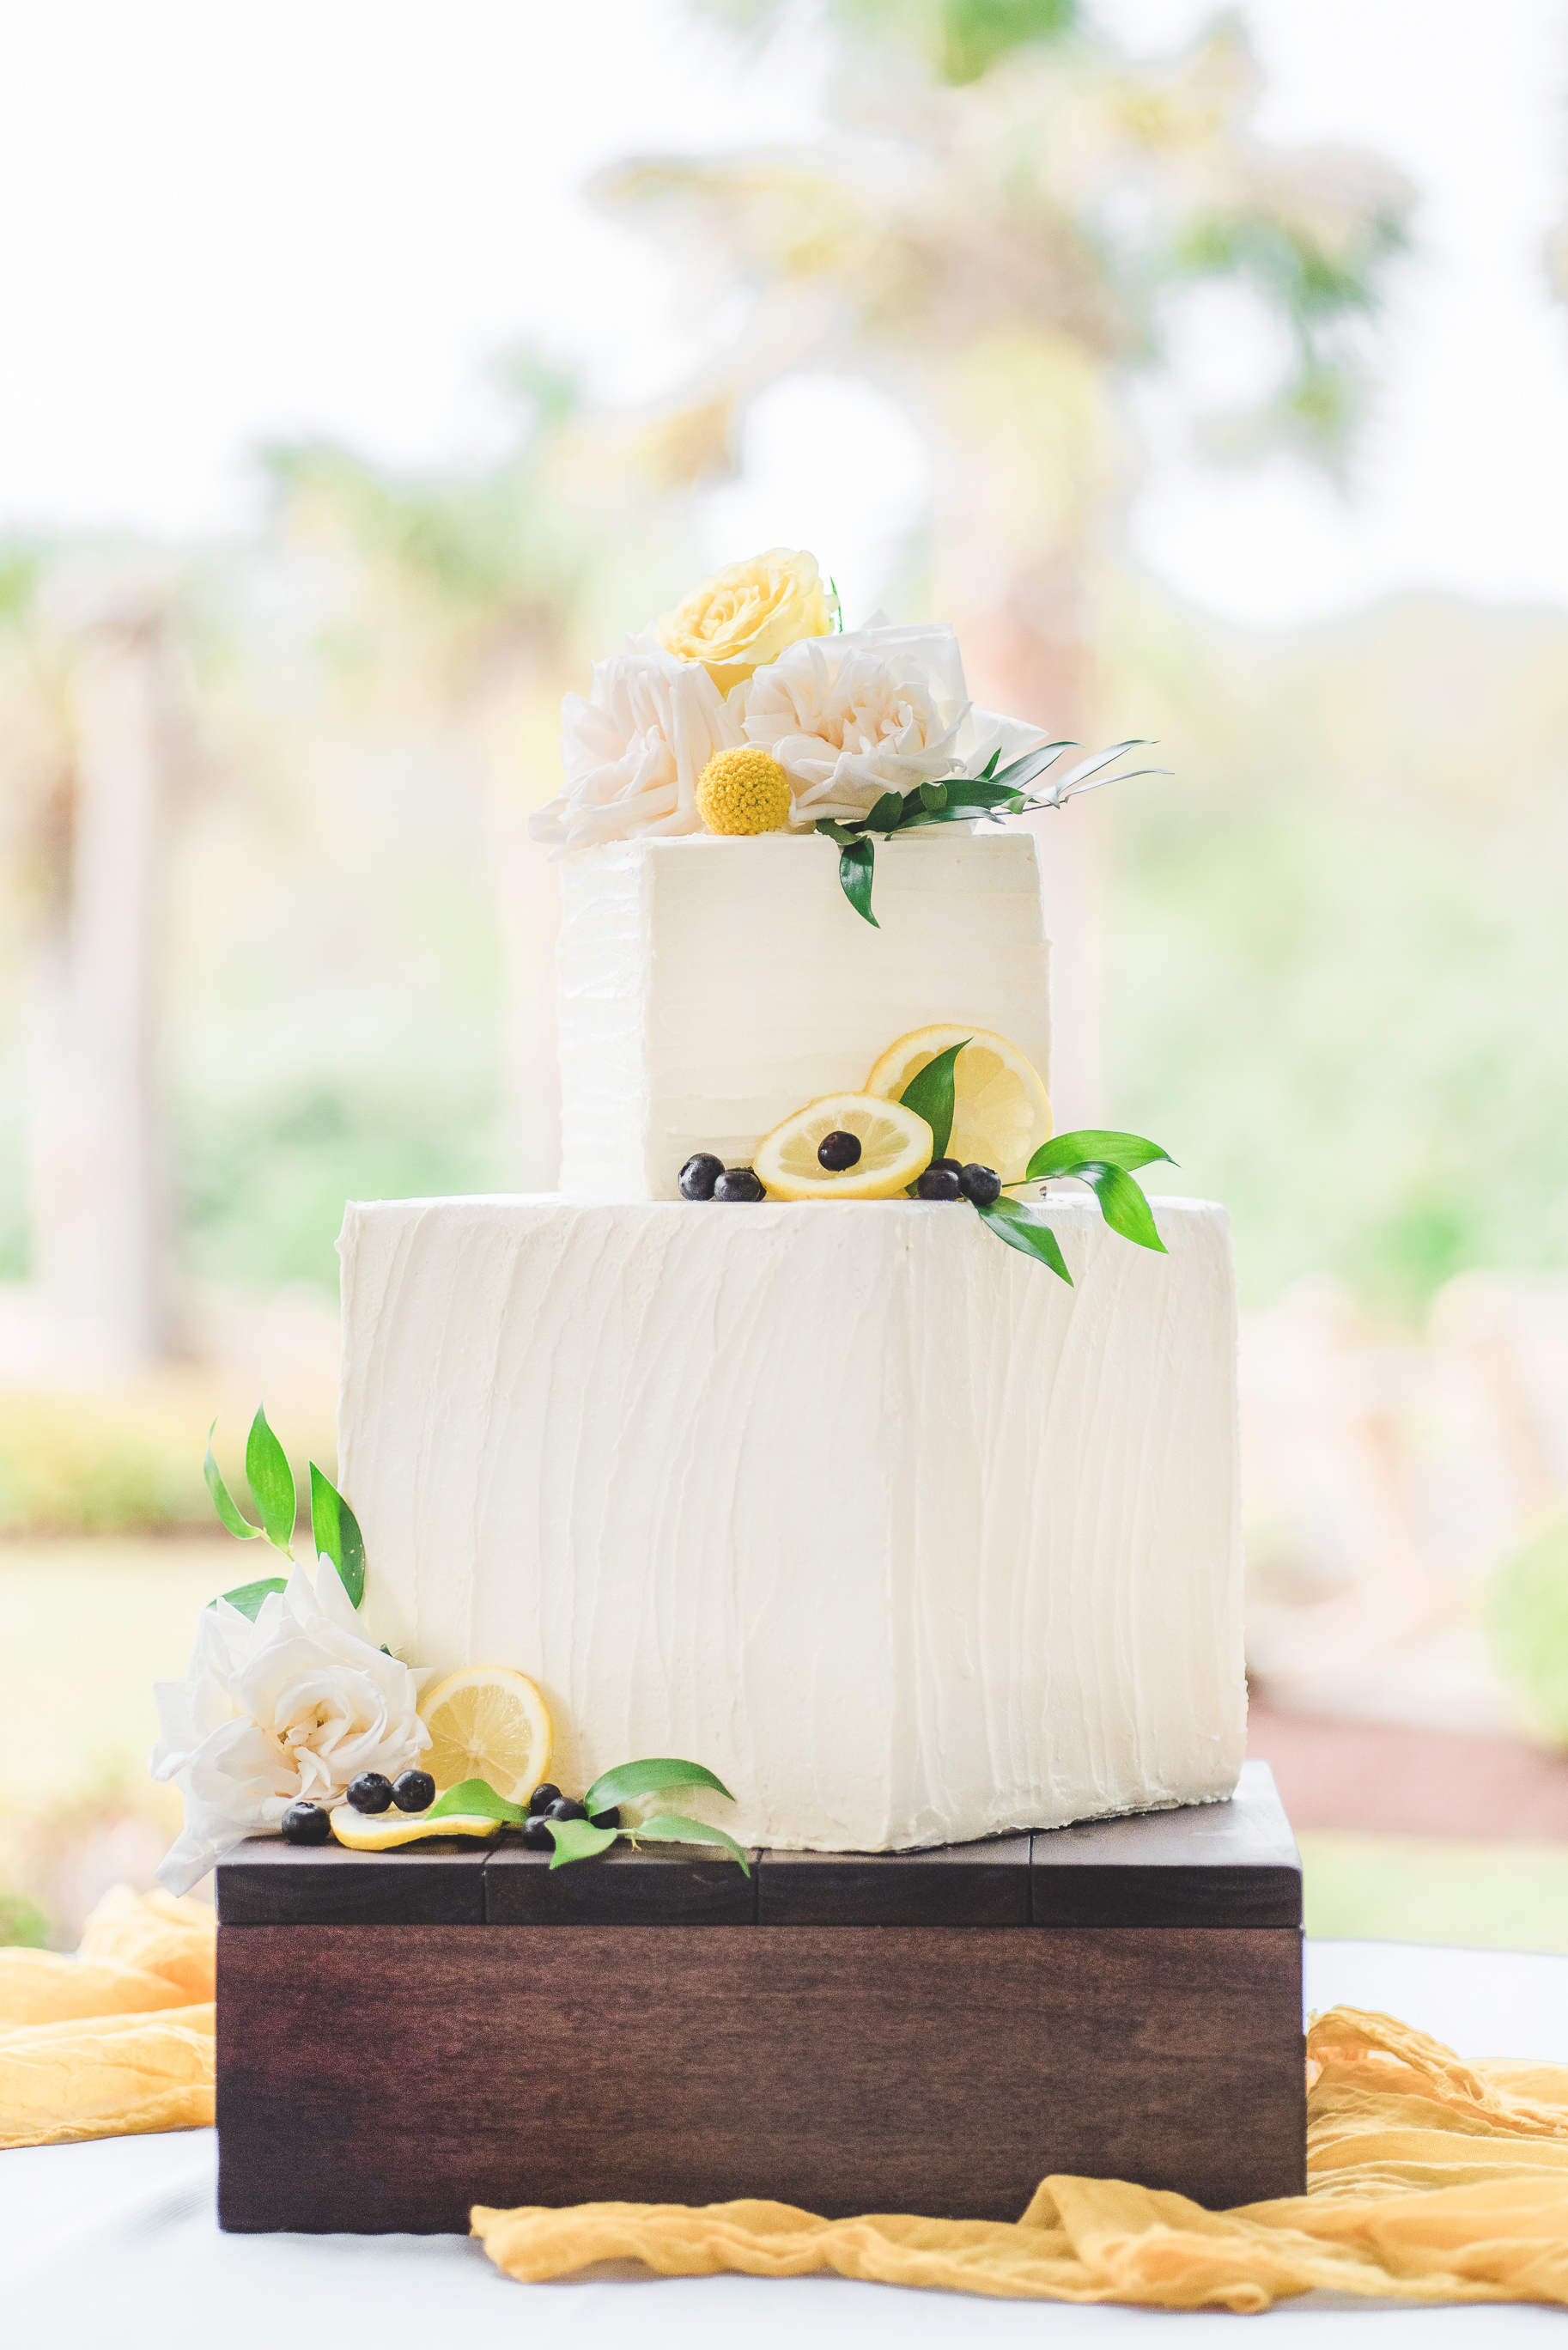 Copy of Wooden cake stand